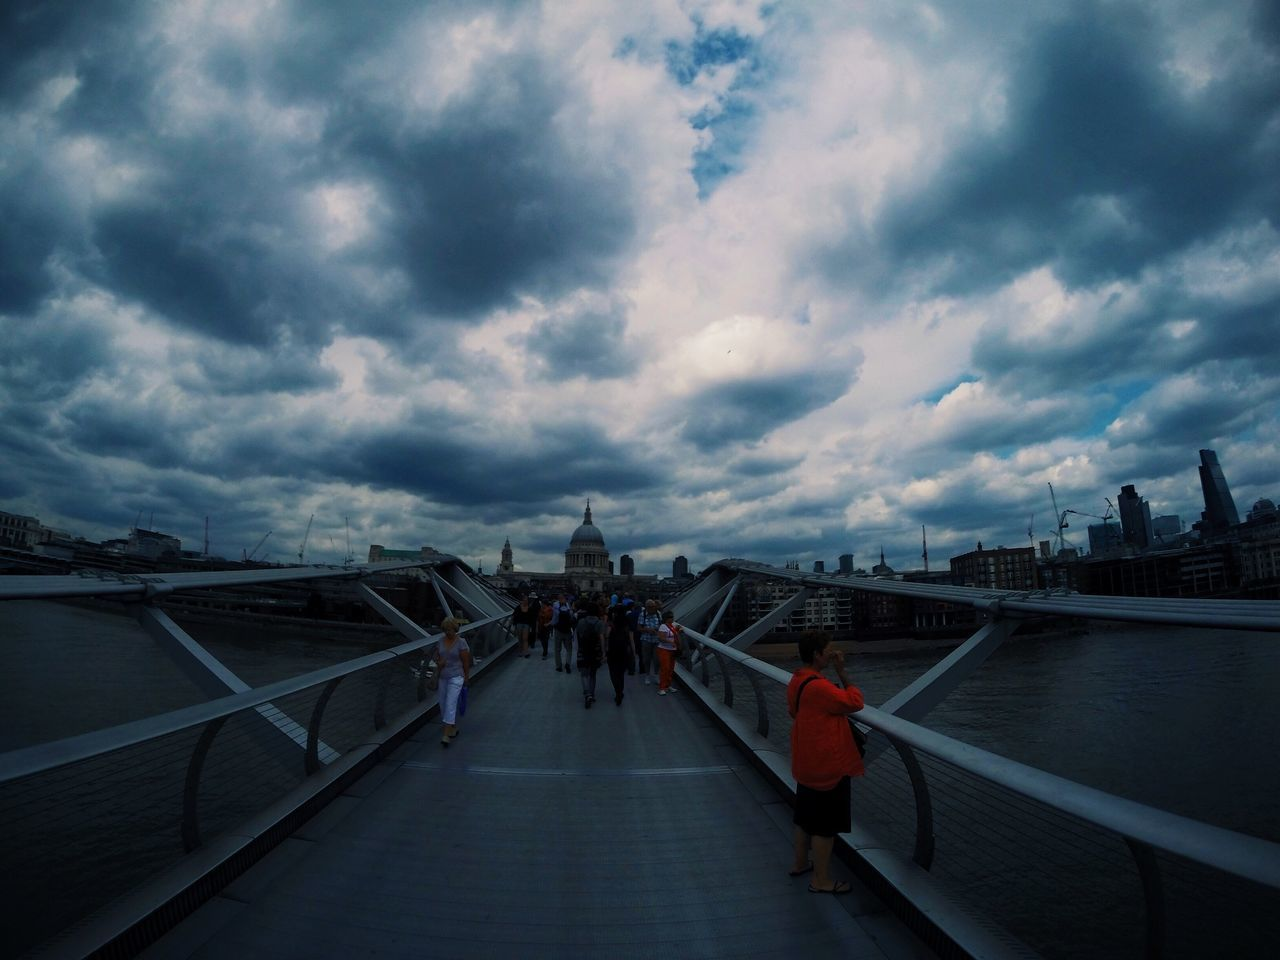 Tourist On Millennium Bridge By St Pauls Cathedral Against Cloudy Sky At Dusk